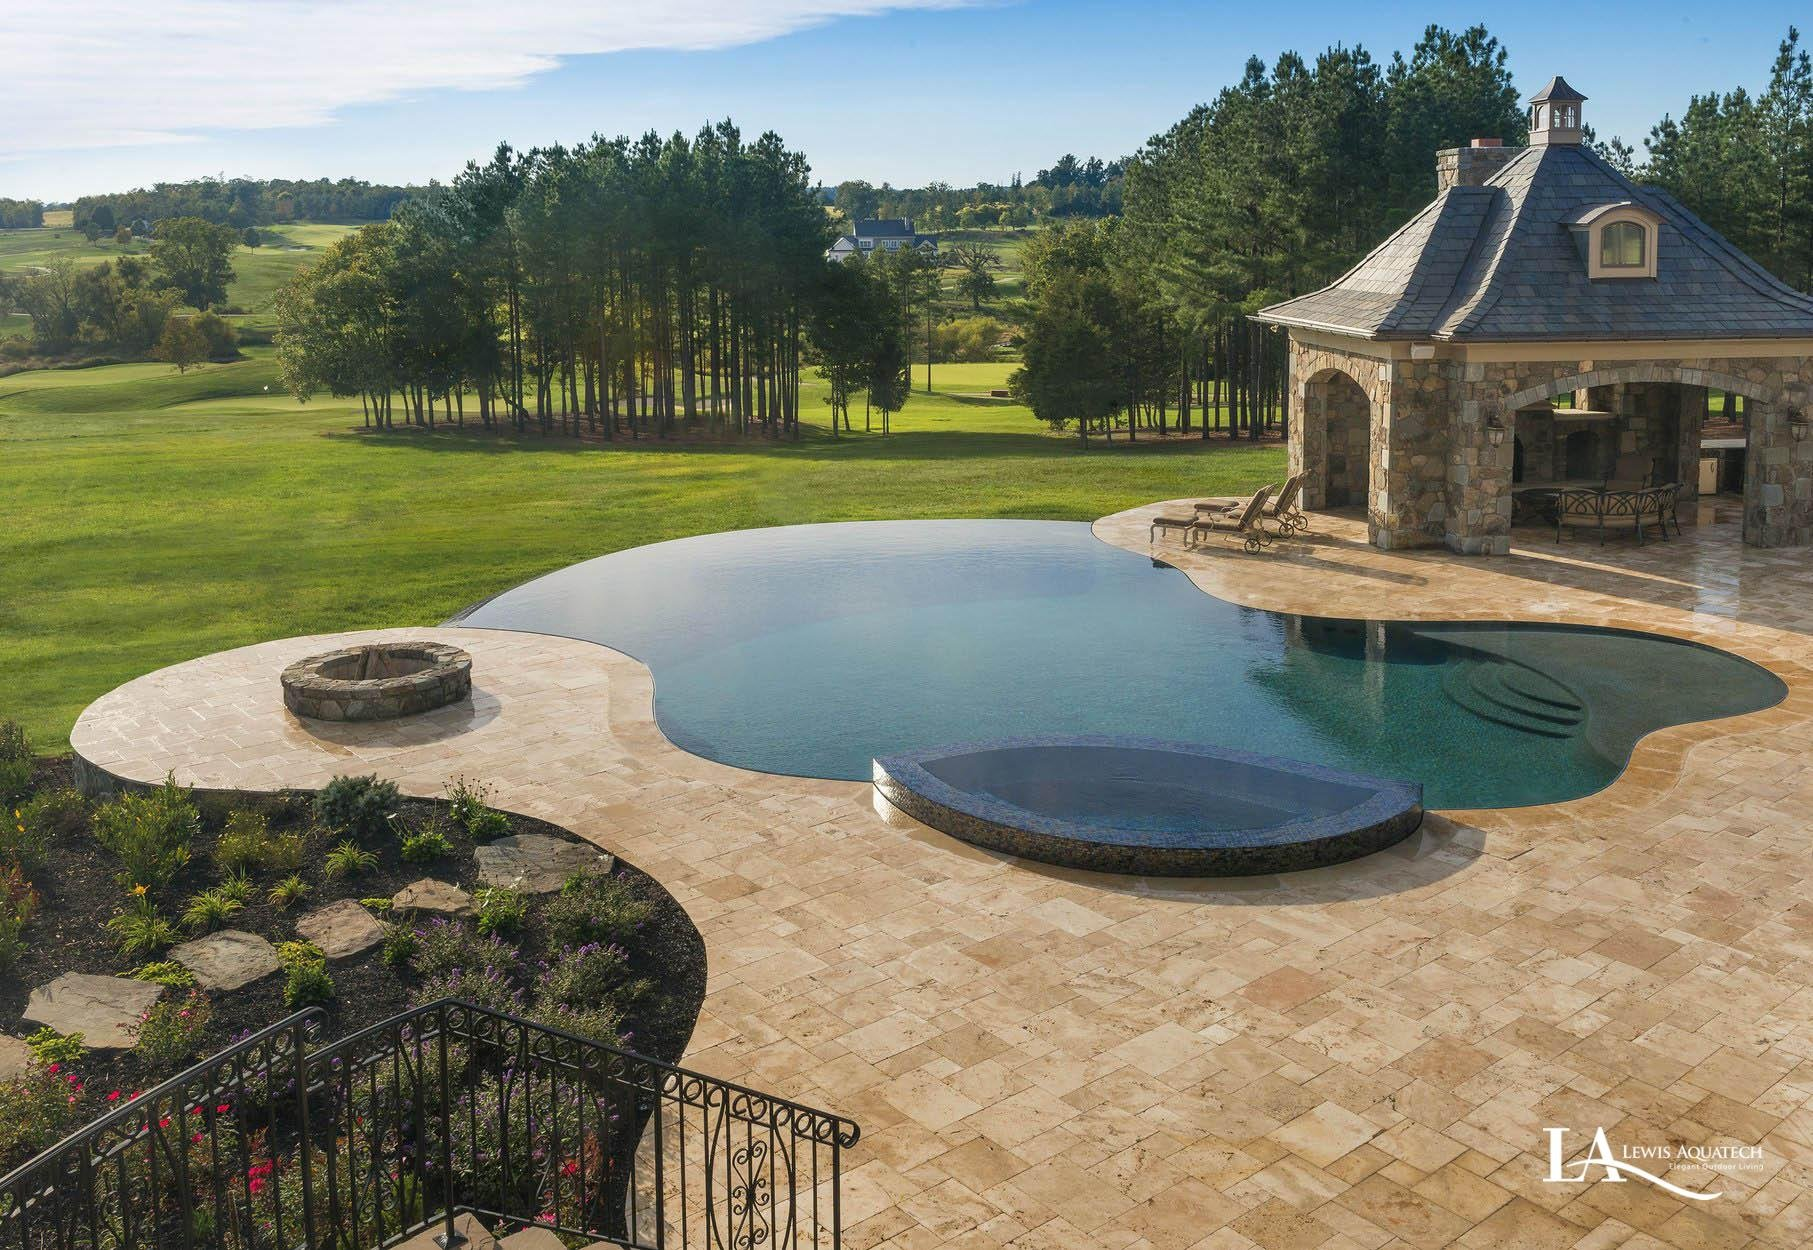 Custom Pool Builder Chantilly Virginia | Inground Pool Construction on custom water features, custom car builder, custom football builder, custom home builder, custom lighting, custom fireplace builder, custom inground pools, custom furniture, custom garage builder, custom pools frisco tx, custom boat builder,